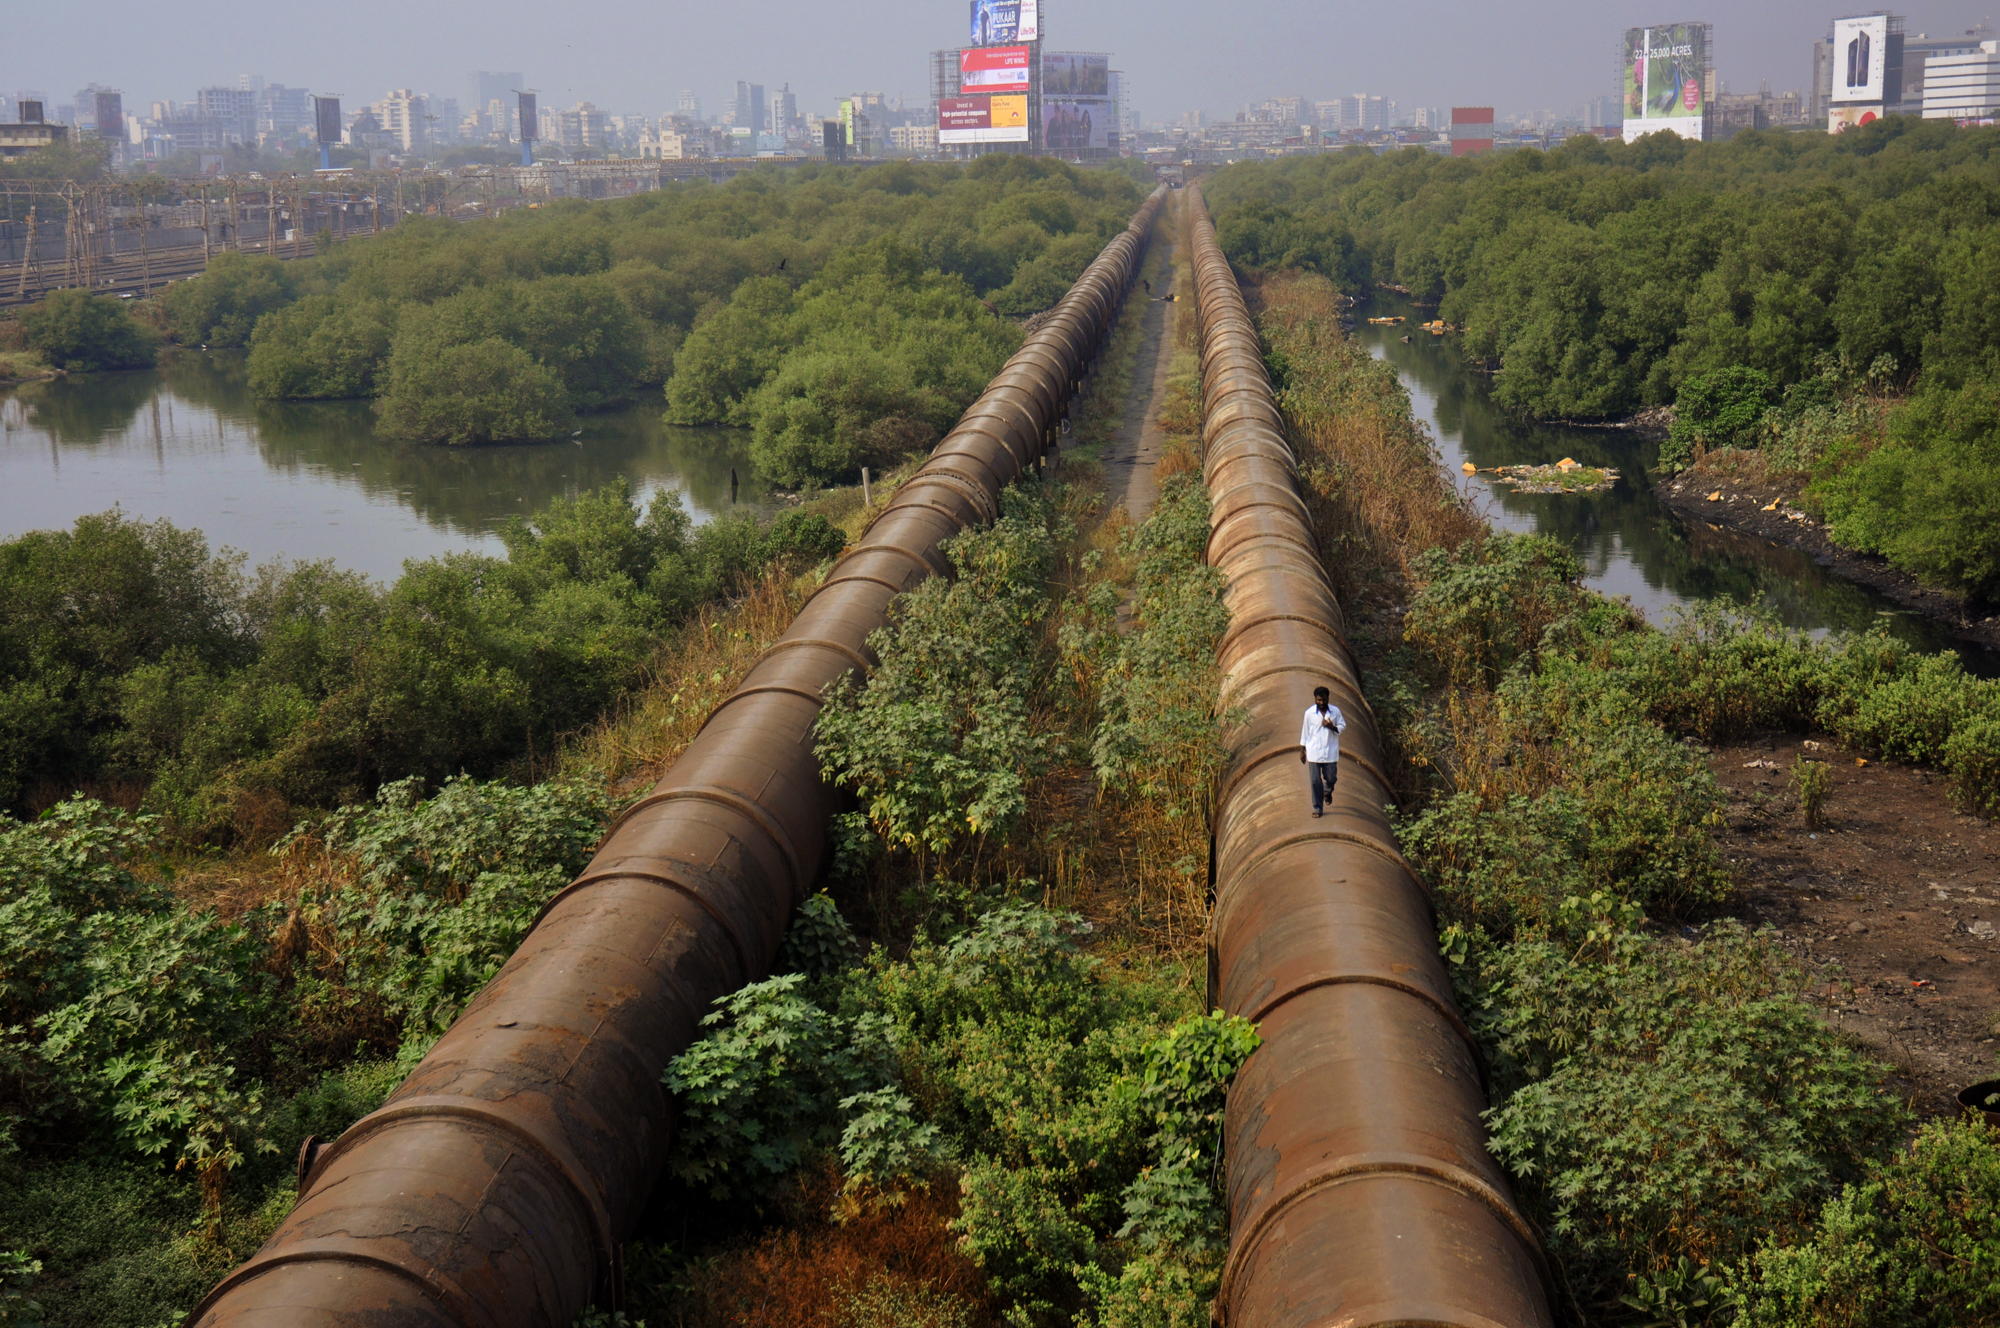 Photo by Kristian Bertel - A giant water pipeline runs along one of Dharavi's rubbish-filled canals in Mumbai, India. As Mumbai's population grows, the demand on the city's existing infrastructure increases exponentially and their water supply is finding it difficult to keep up.